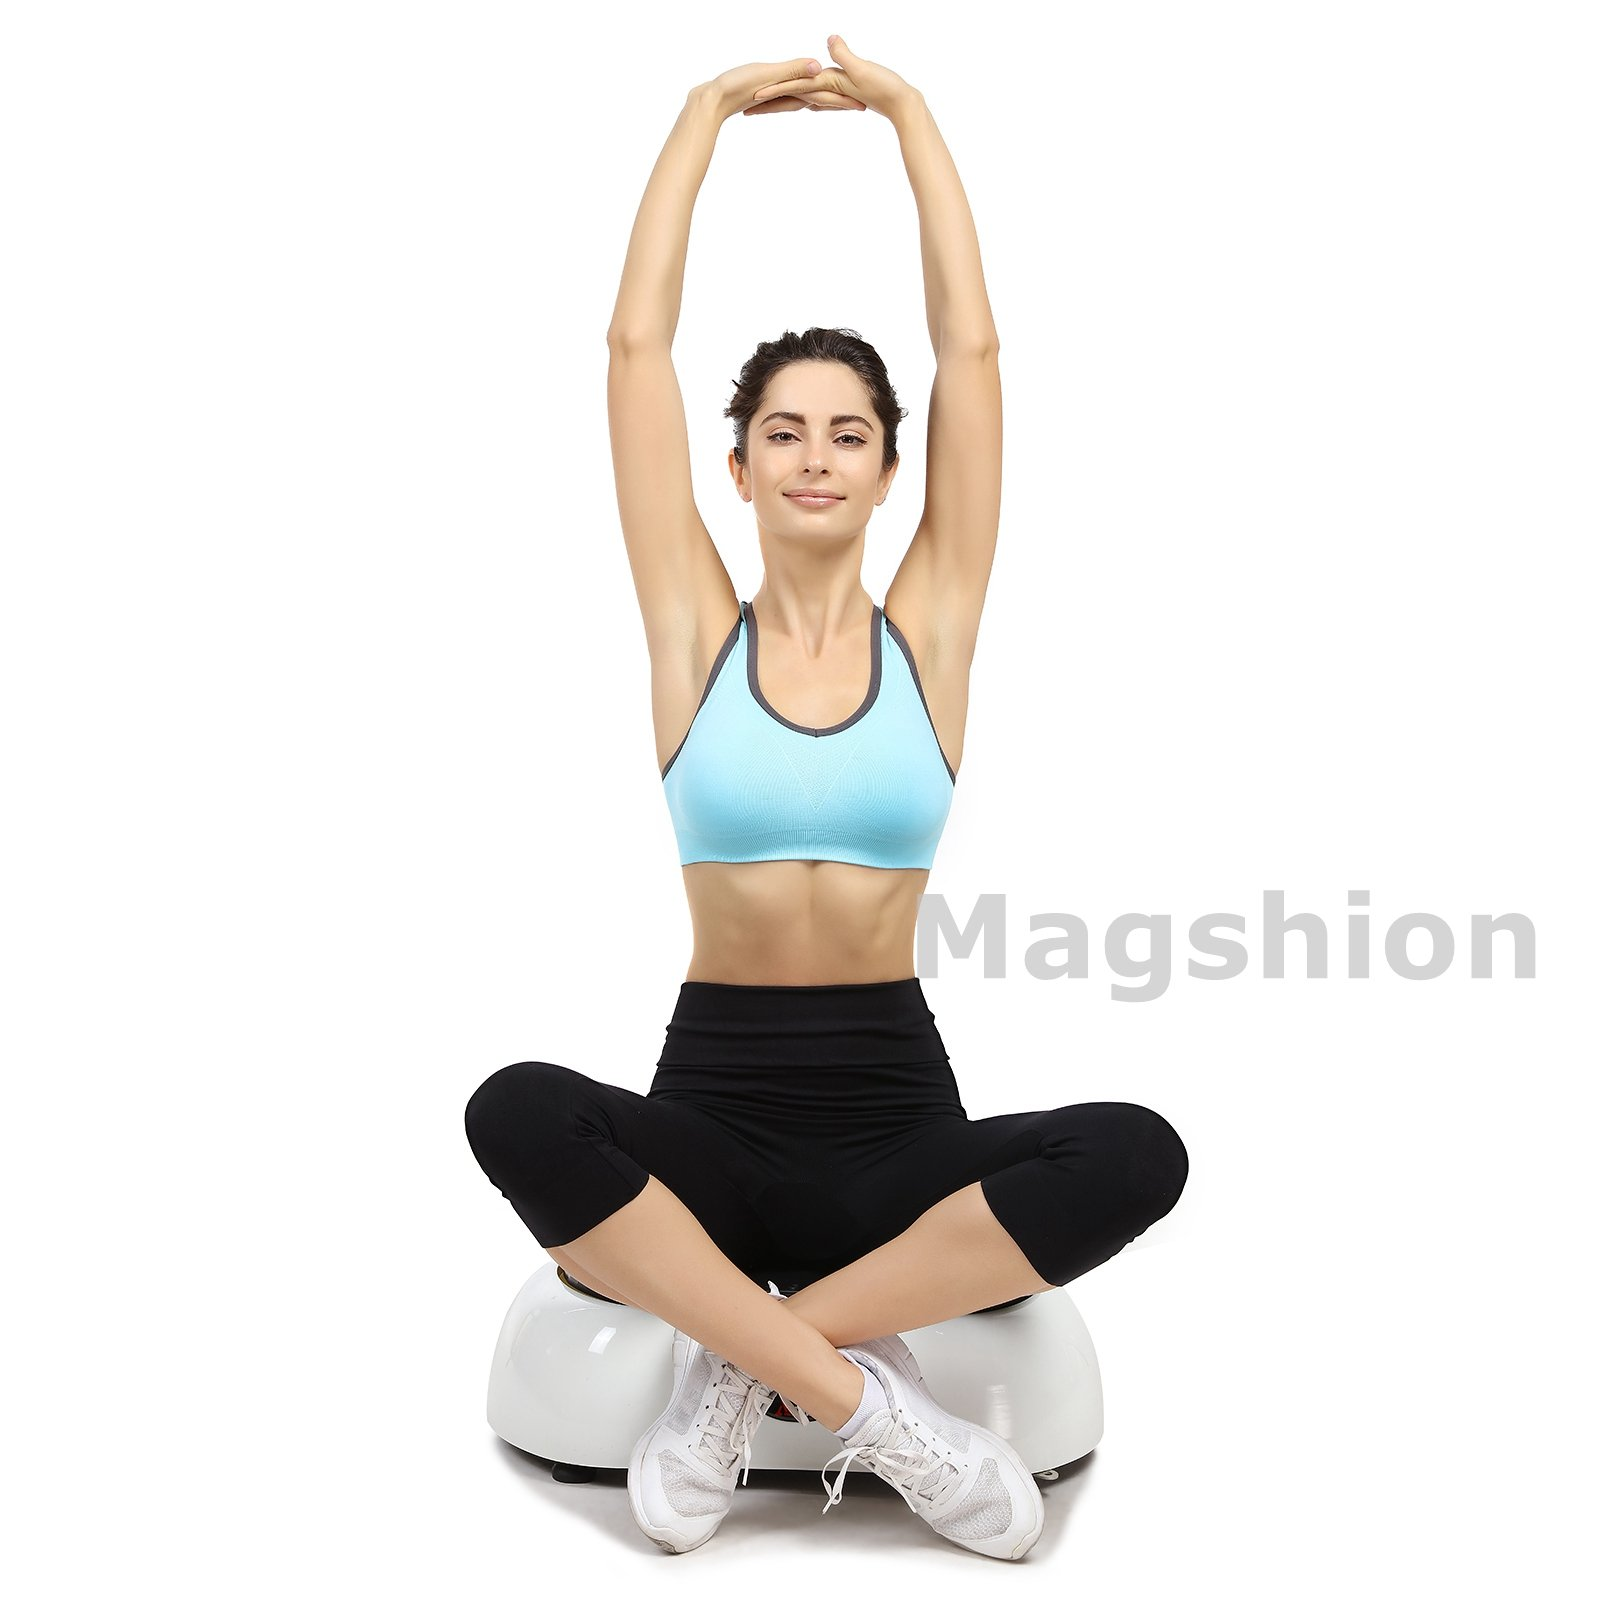 X-MAG Portable Whole Body Vibration Fitness Trainer Platform Machine with Straps, White by X-MAG (Image #6)